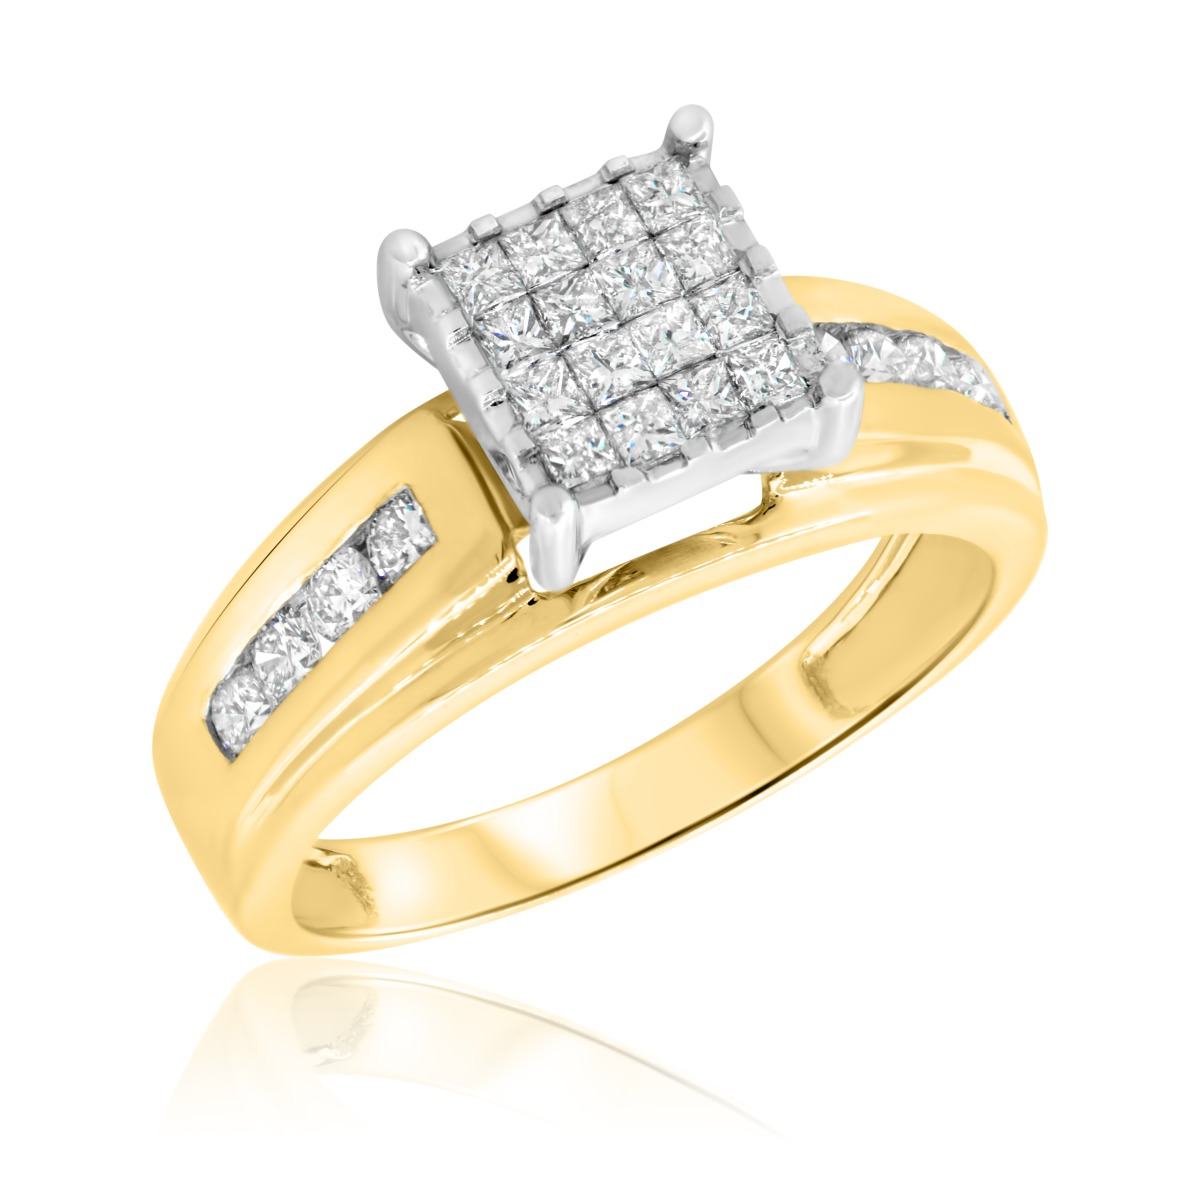 1 CT. T.W. Diamond Ladies' Engagement Ring 10K Yellow Gold